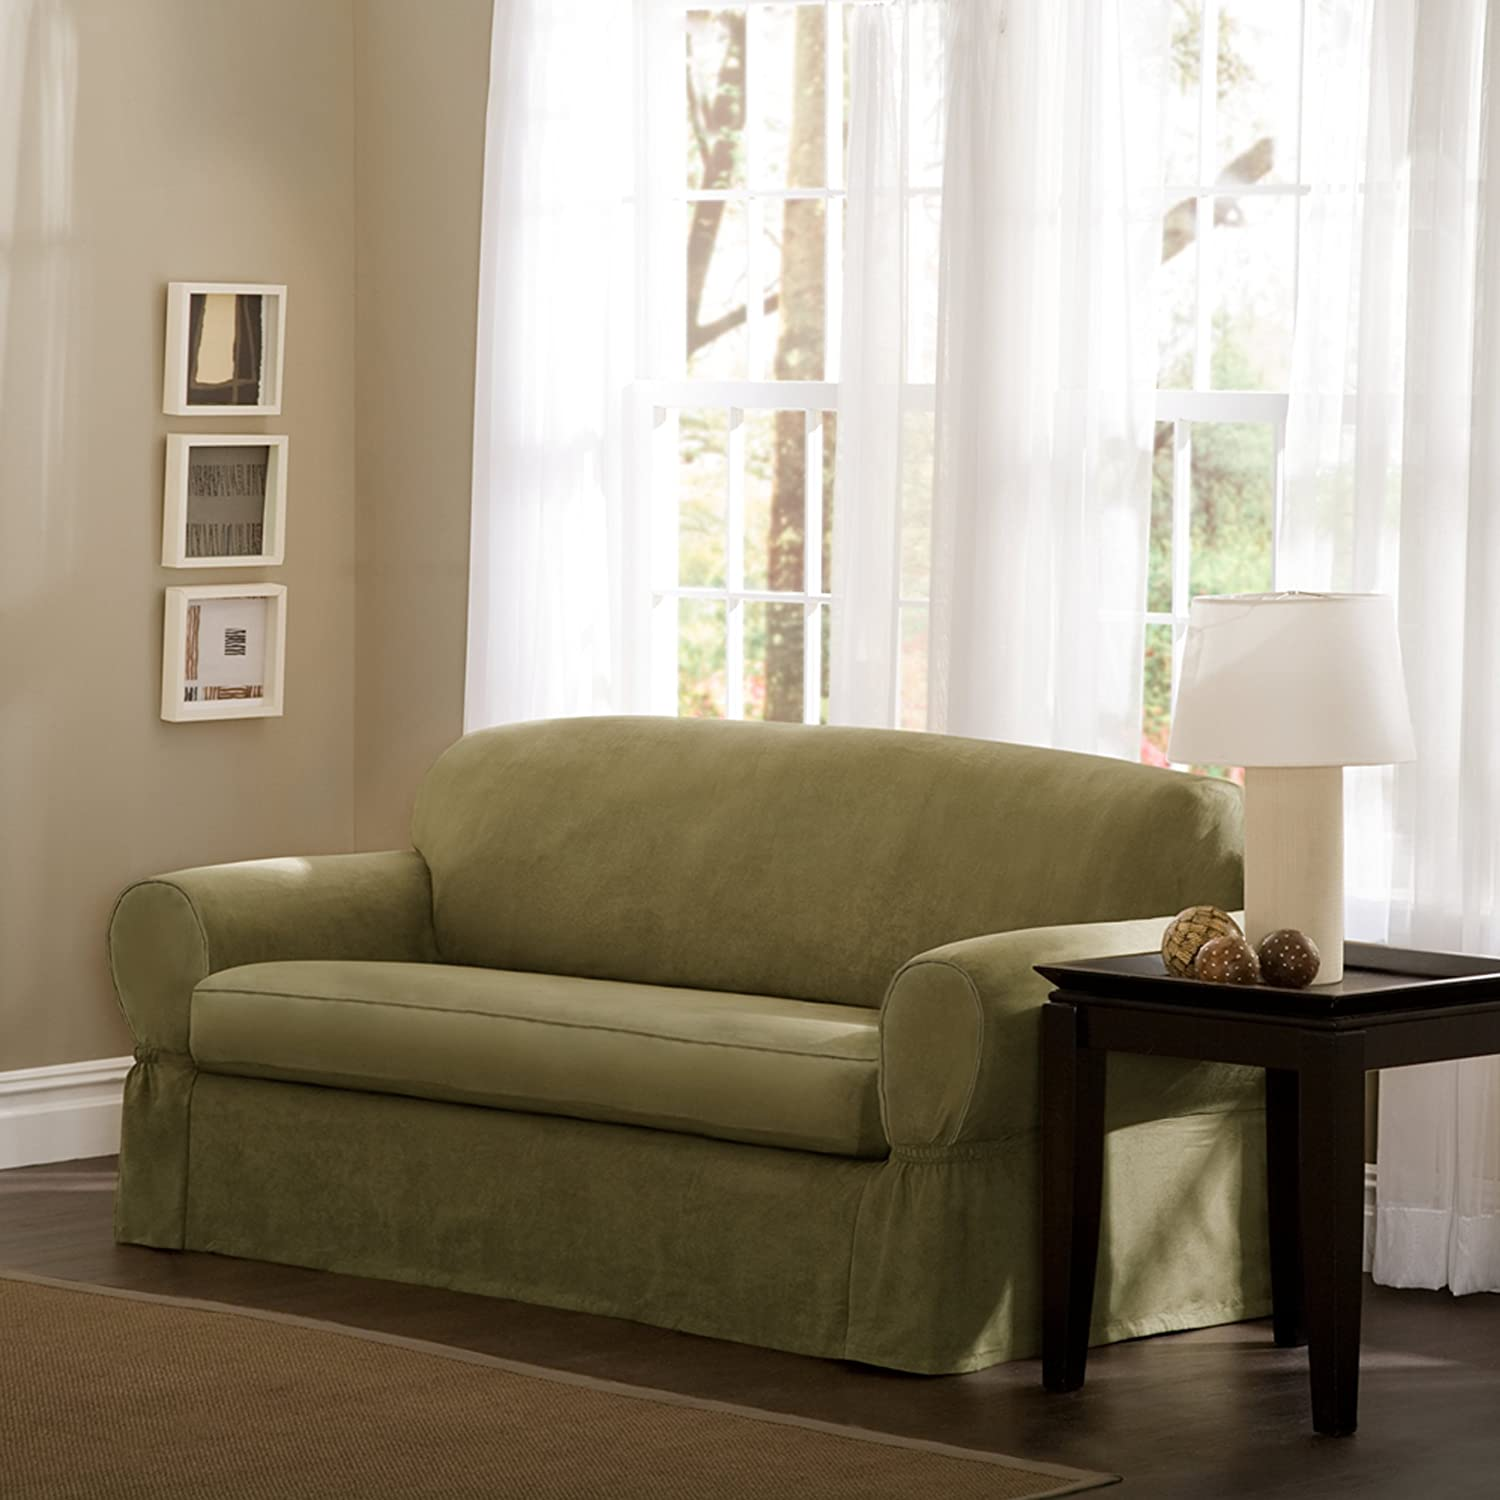 Amazon Maytex Piped Suede 2 Piece Sofa Slipcover Sage Home